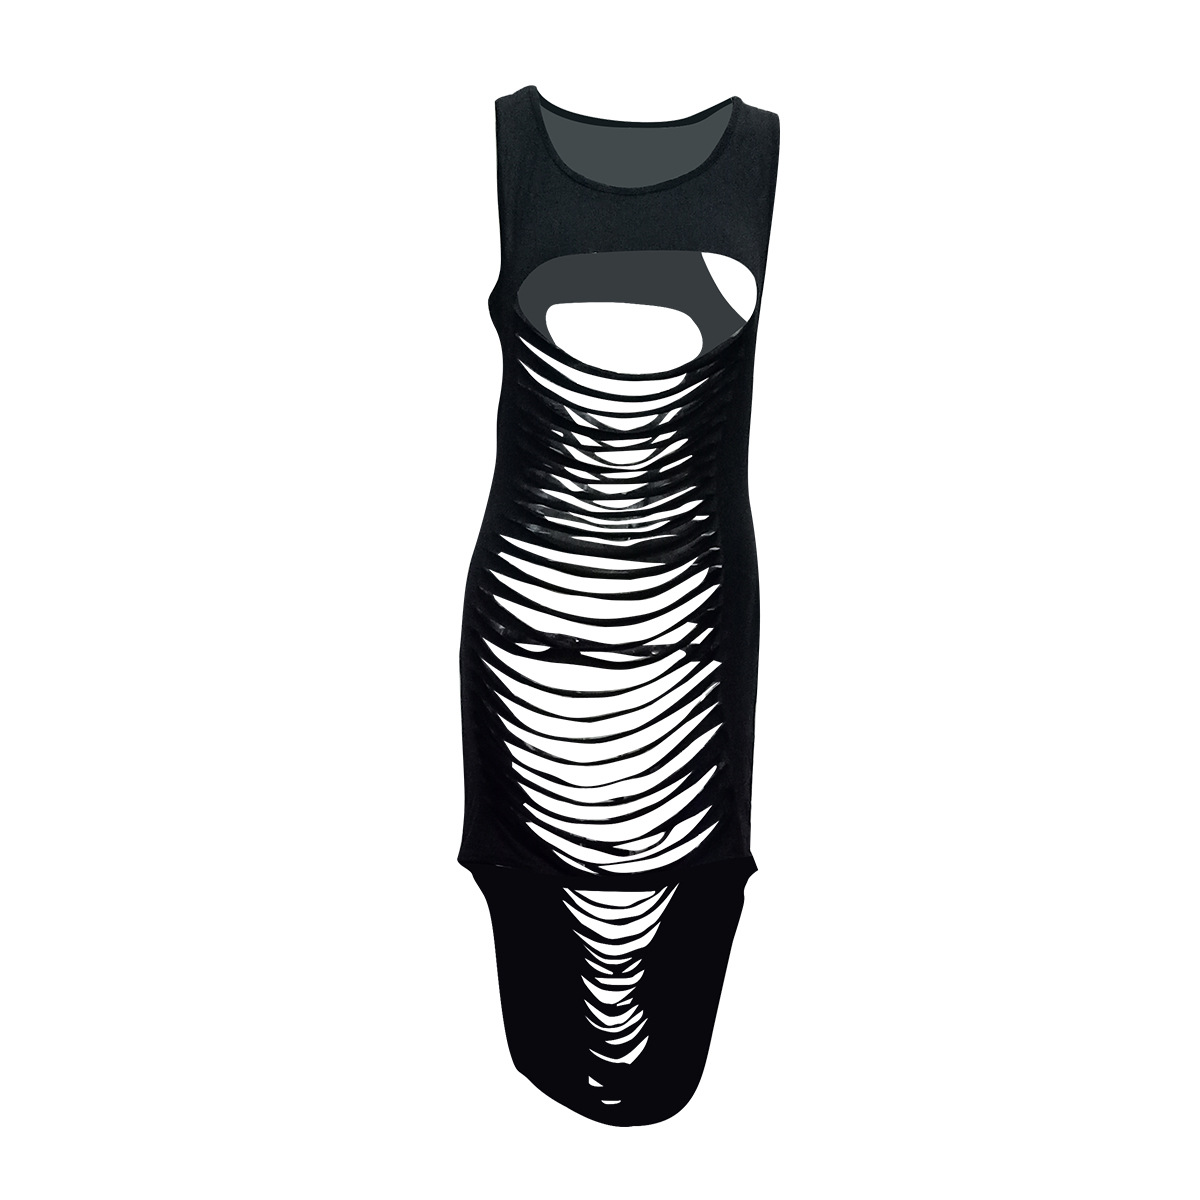 Sexy Round Neck Sleeveless Hollow-out Black Milk Fiber Sheath Ankle Length Dress(Non Positioning Printing)